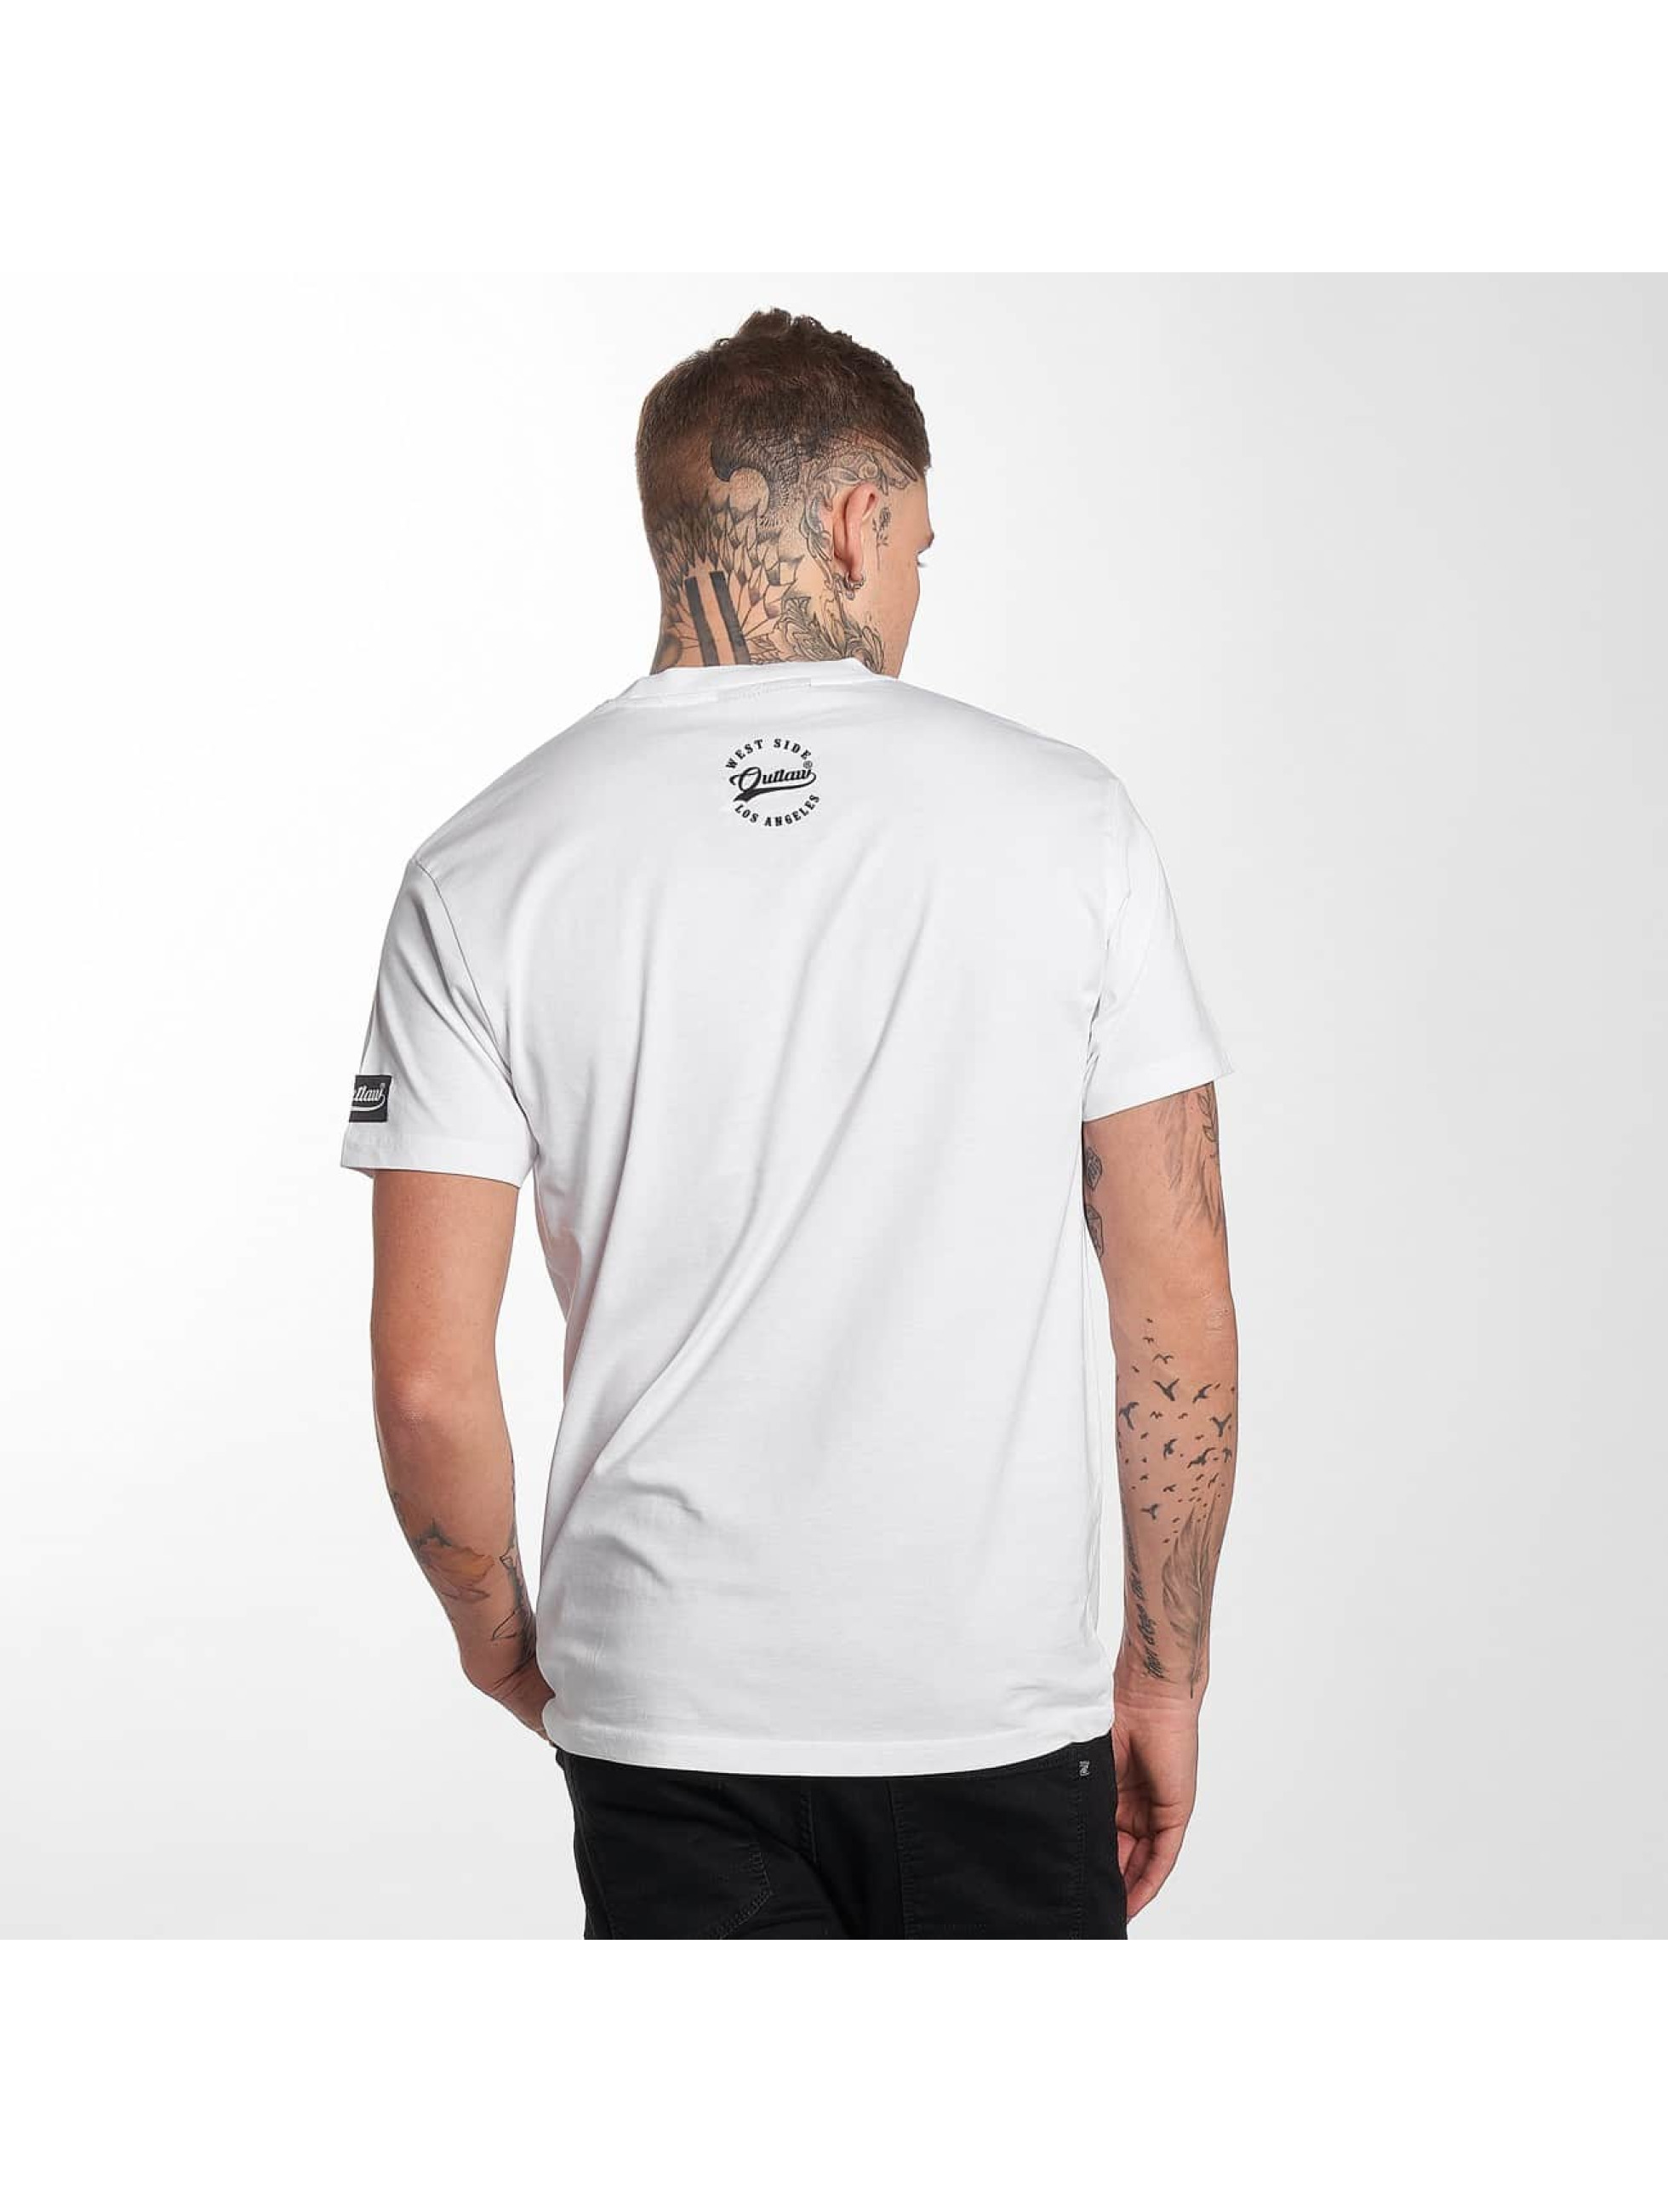 Outlaw T-Shirt Outlaw Brand blanc